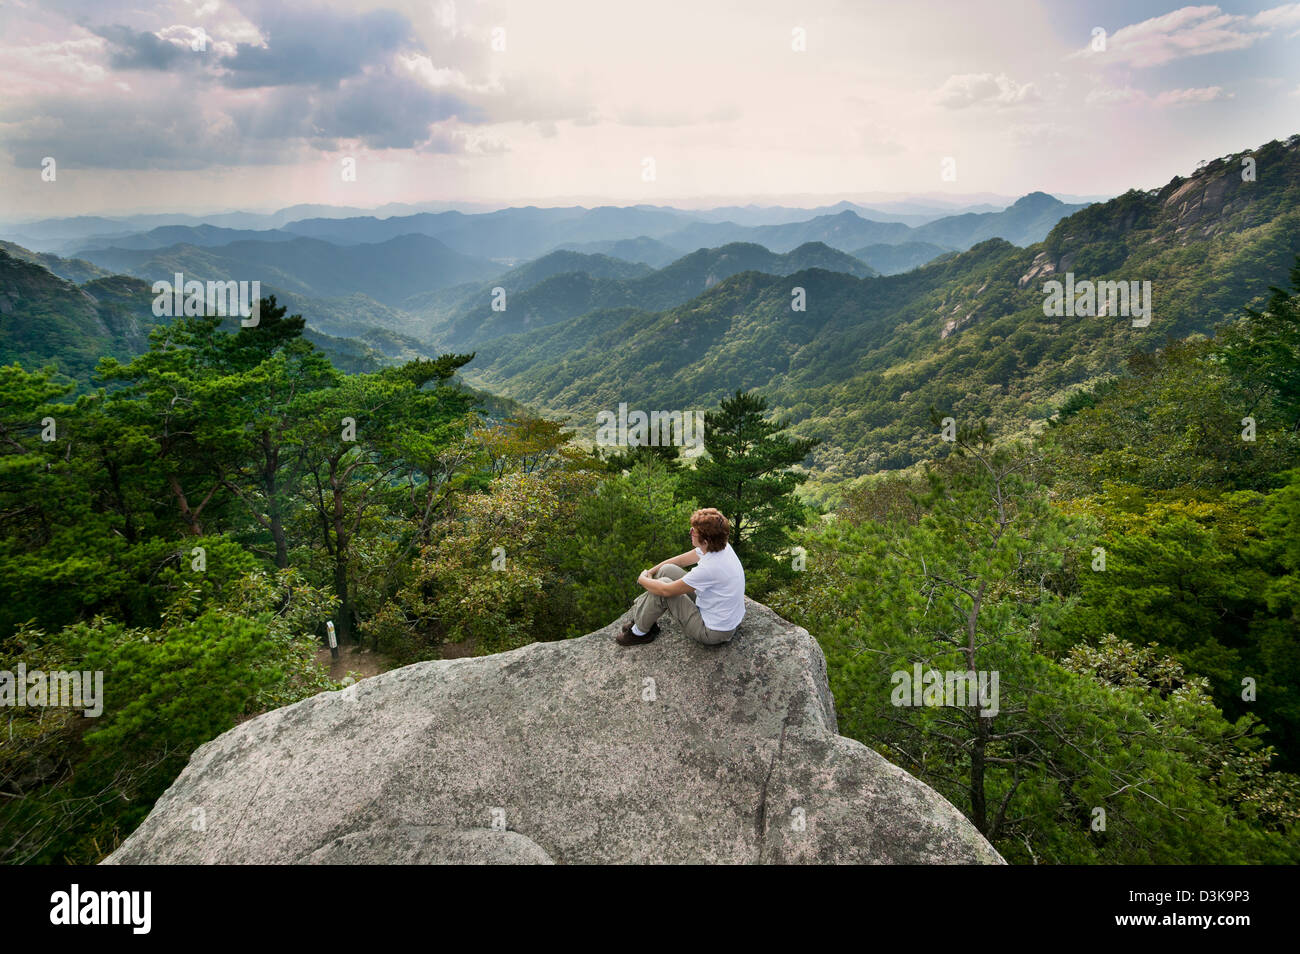 Repubblica di Corea, Chungcheongbuk-Do, Songnisan National Park, panorama di montagna Immagini Stock